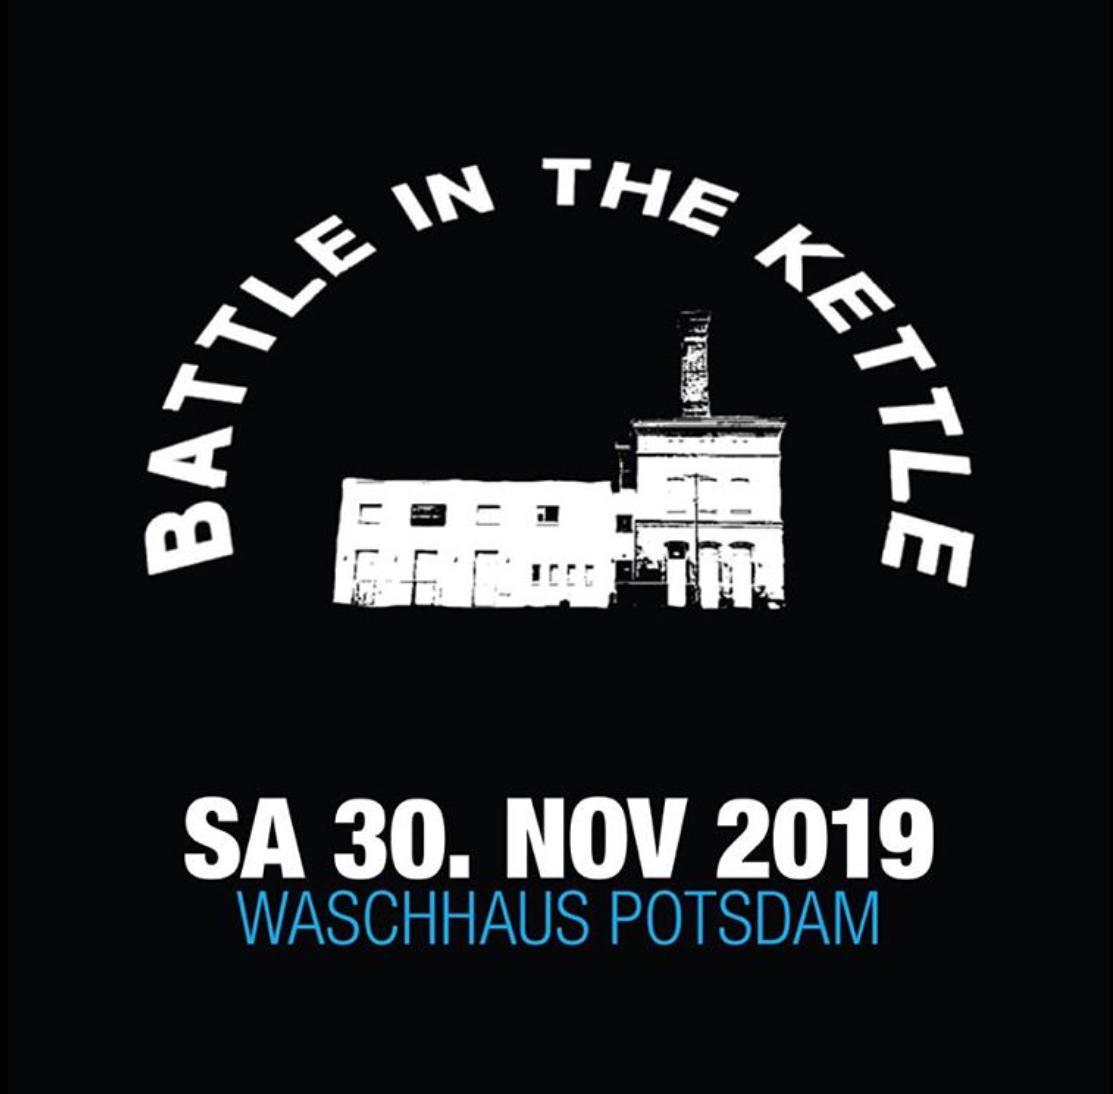 Battle In The Kettle poster